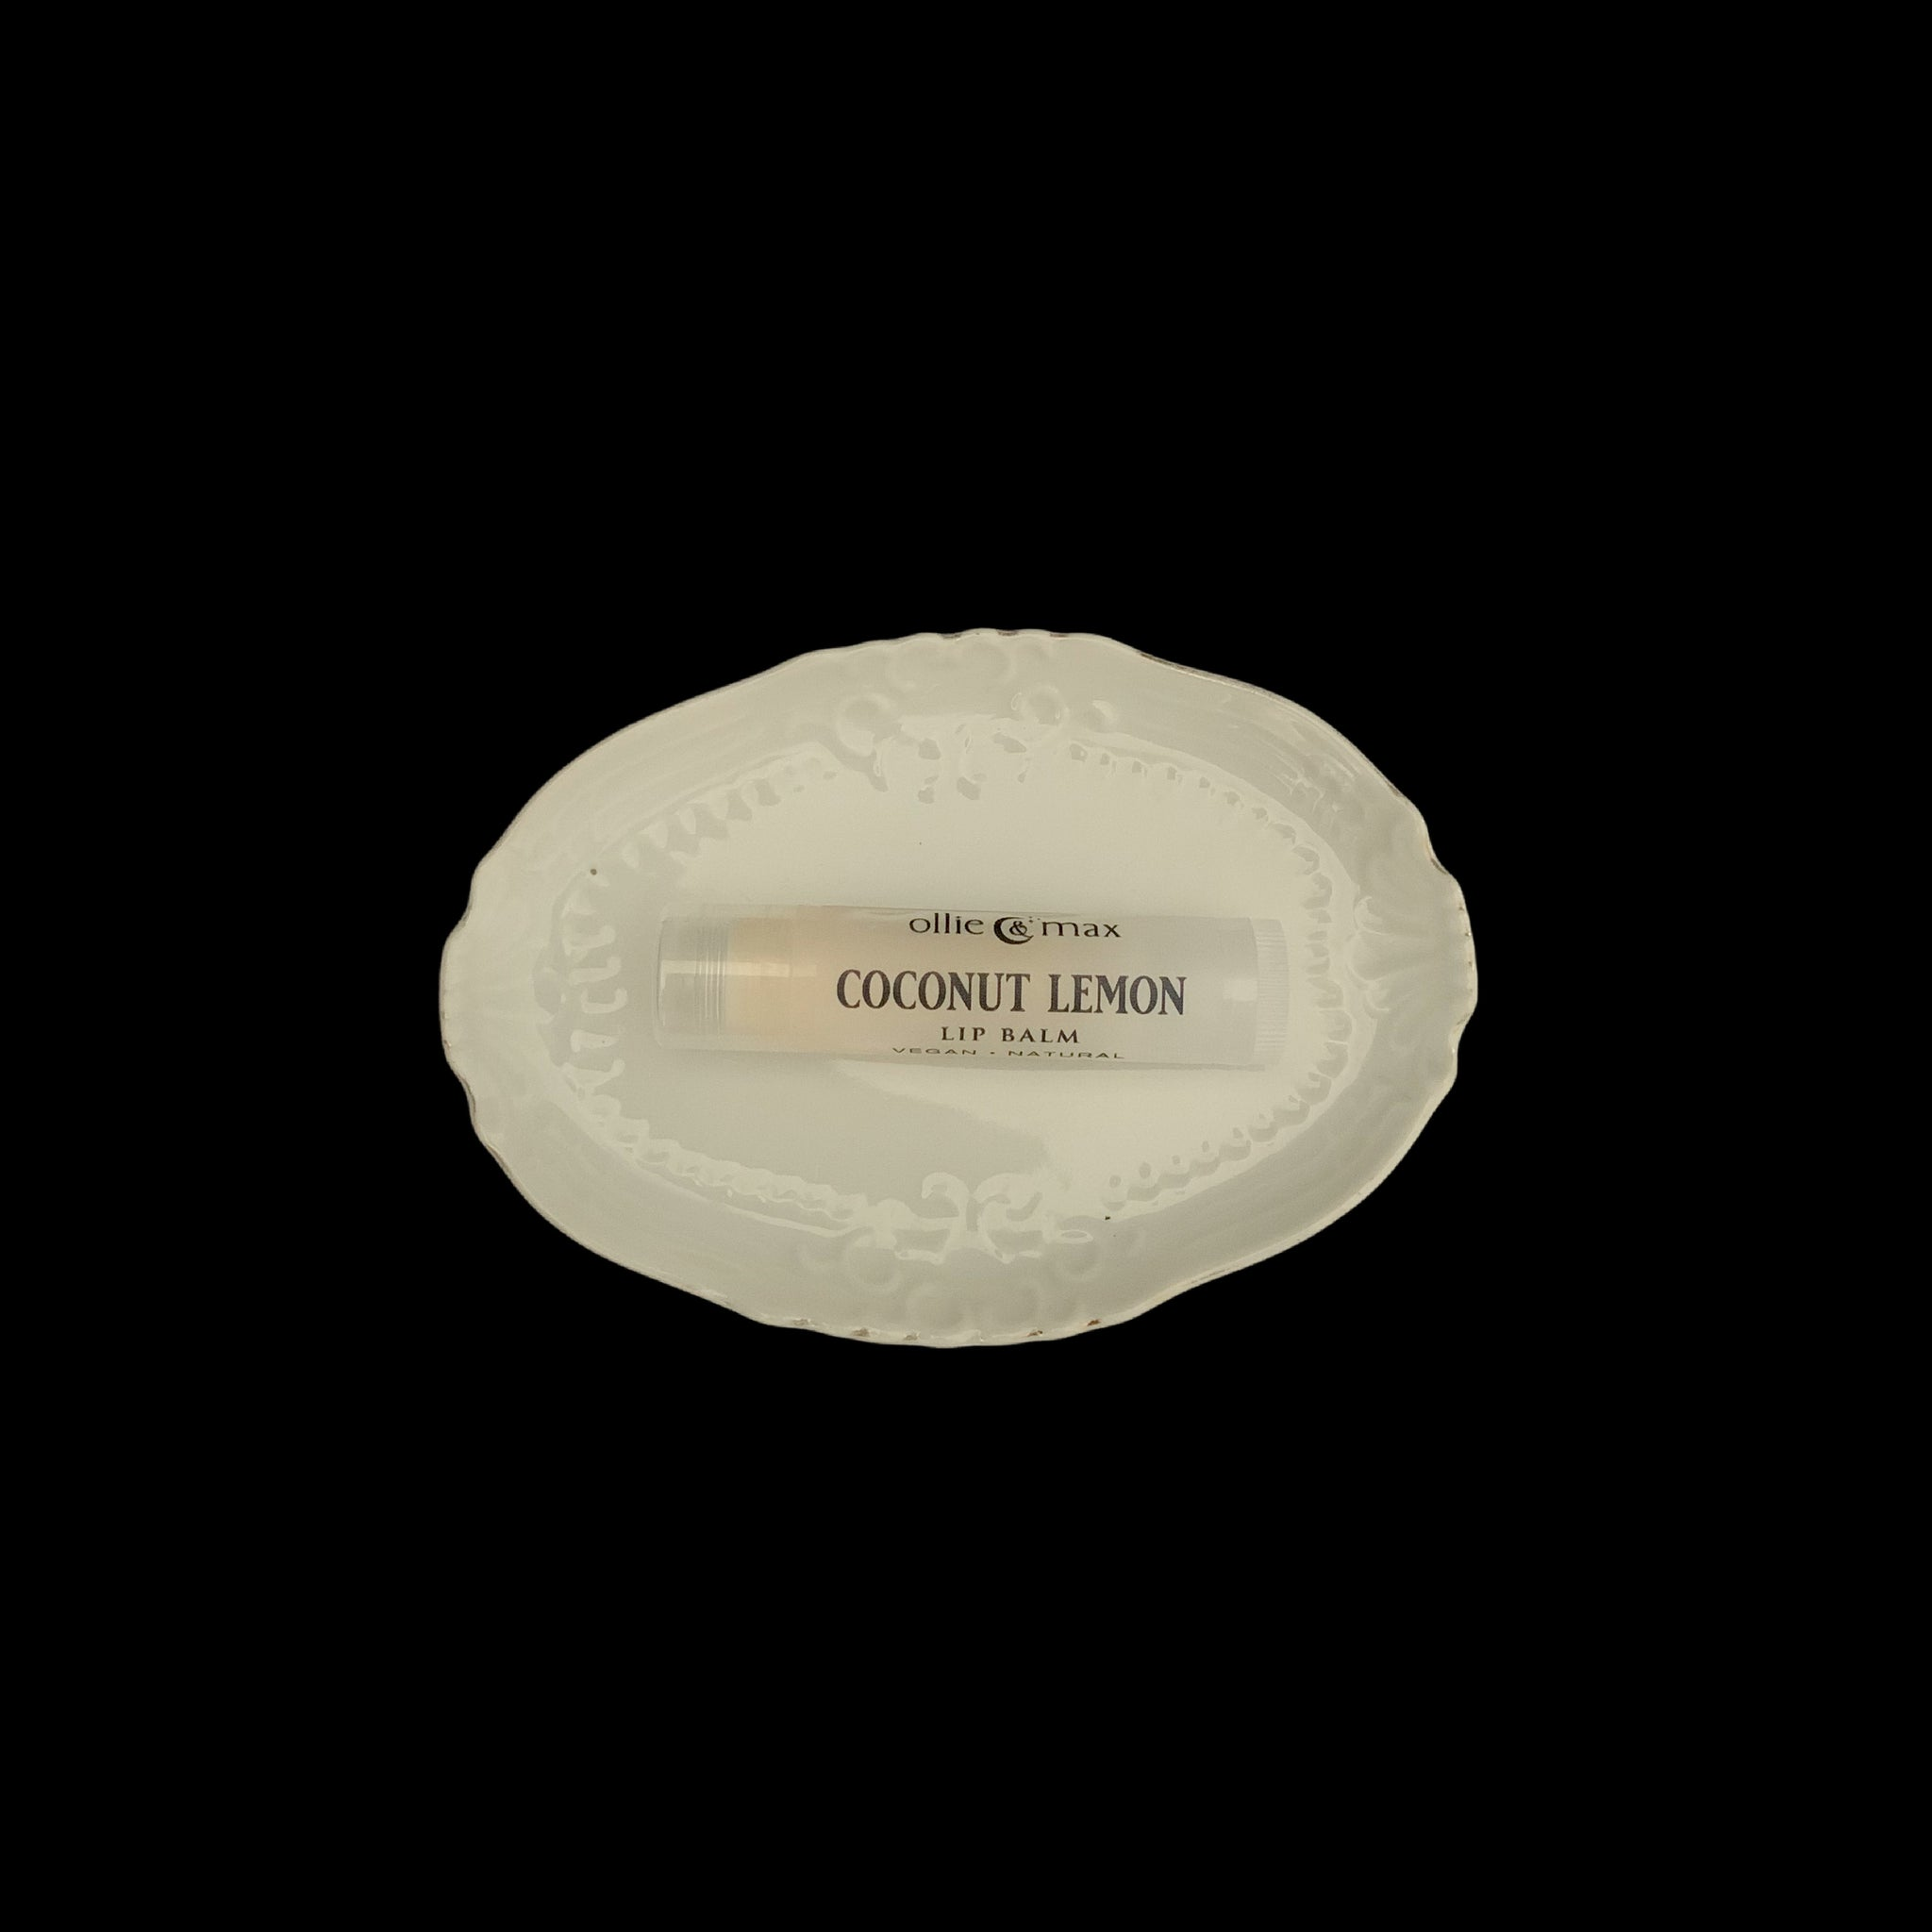 Coconut Lemon Vegan Lip Balm